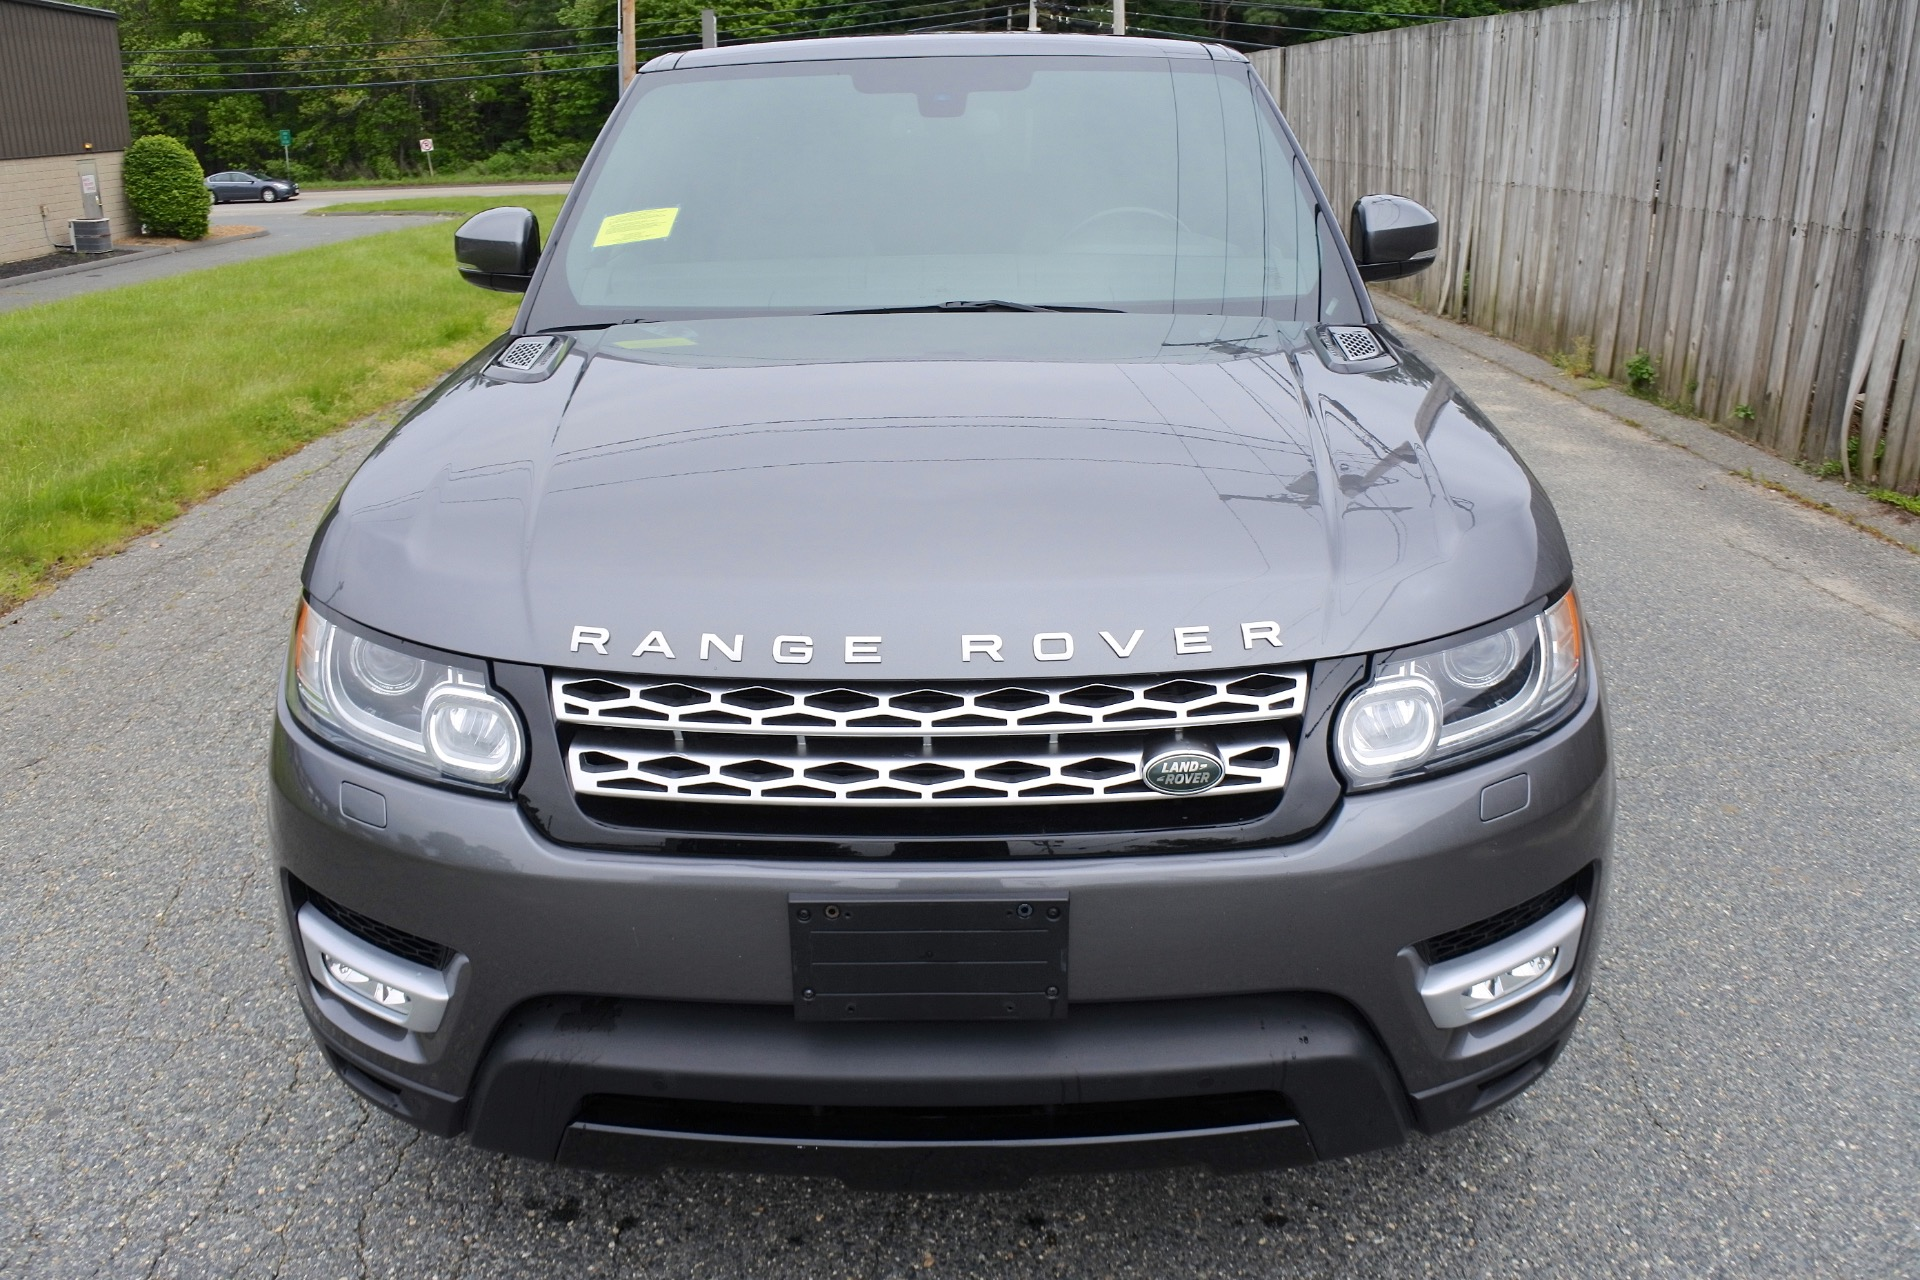 Used 2015 Land Rover Range Rover Sport HSE Used 2015 Land Rover Range Rover Sport HSE for sale  at Metro West Motorcars LLC in Shrewsbury MA 8